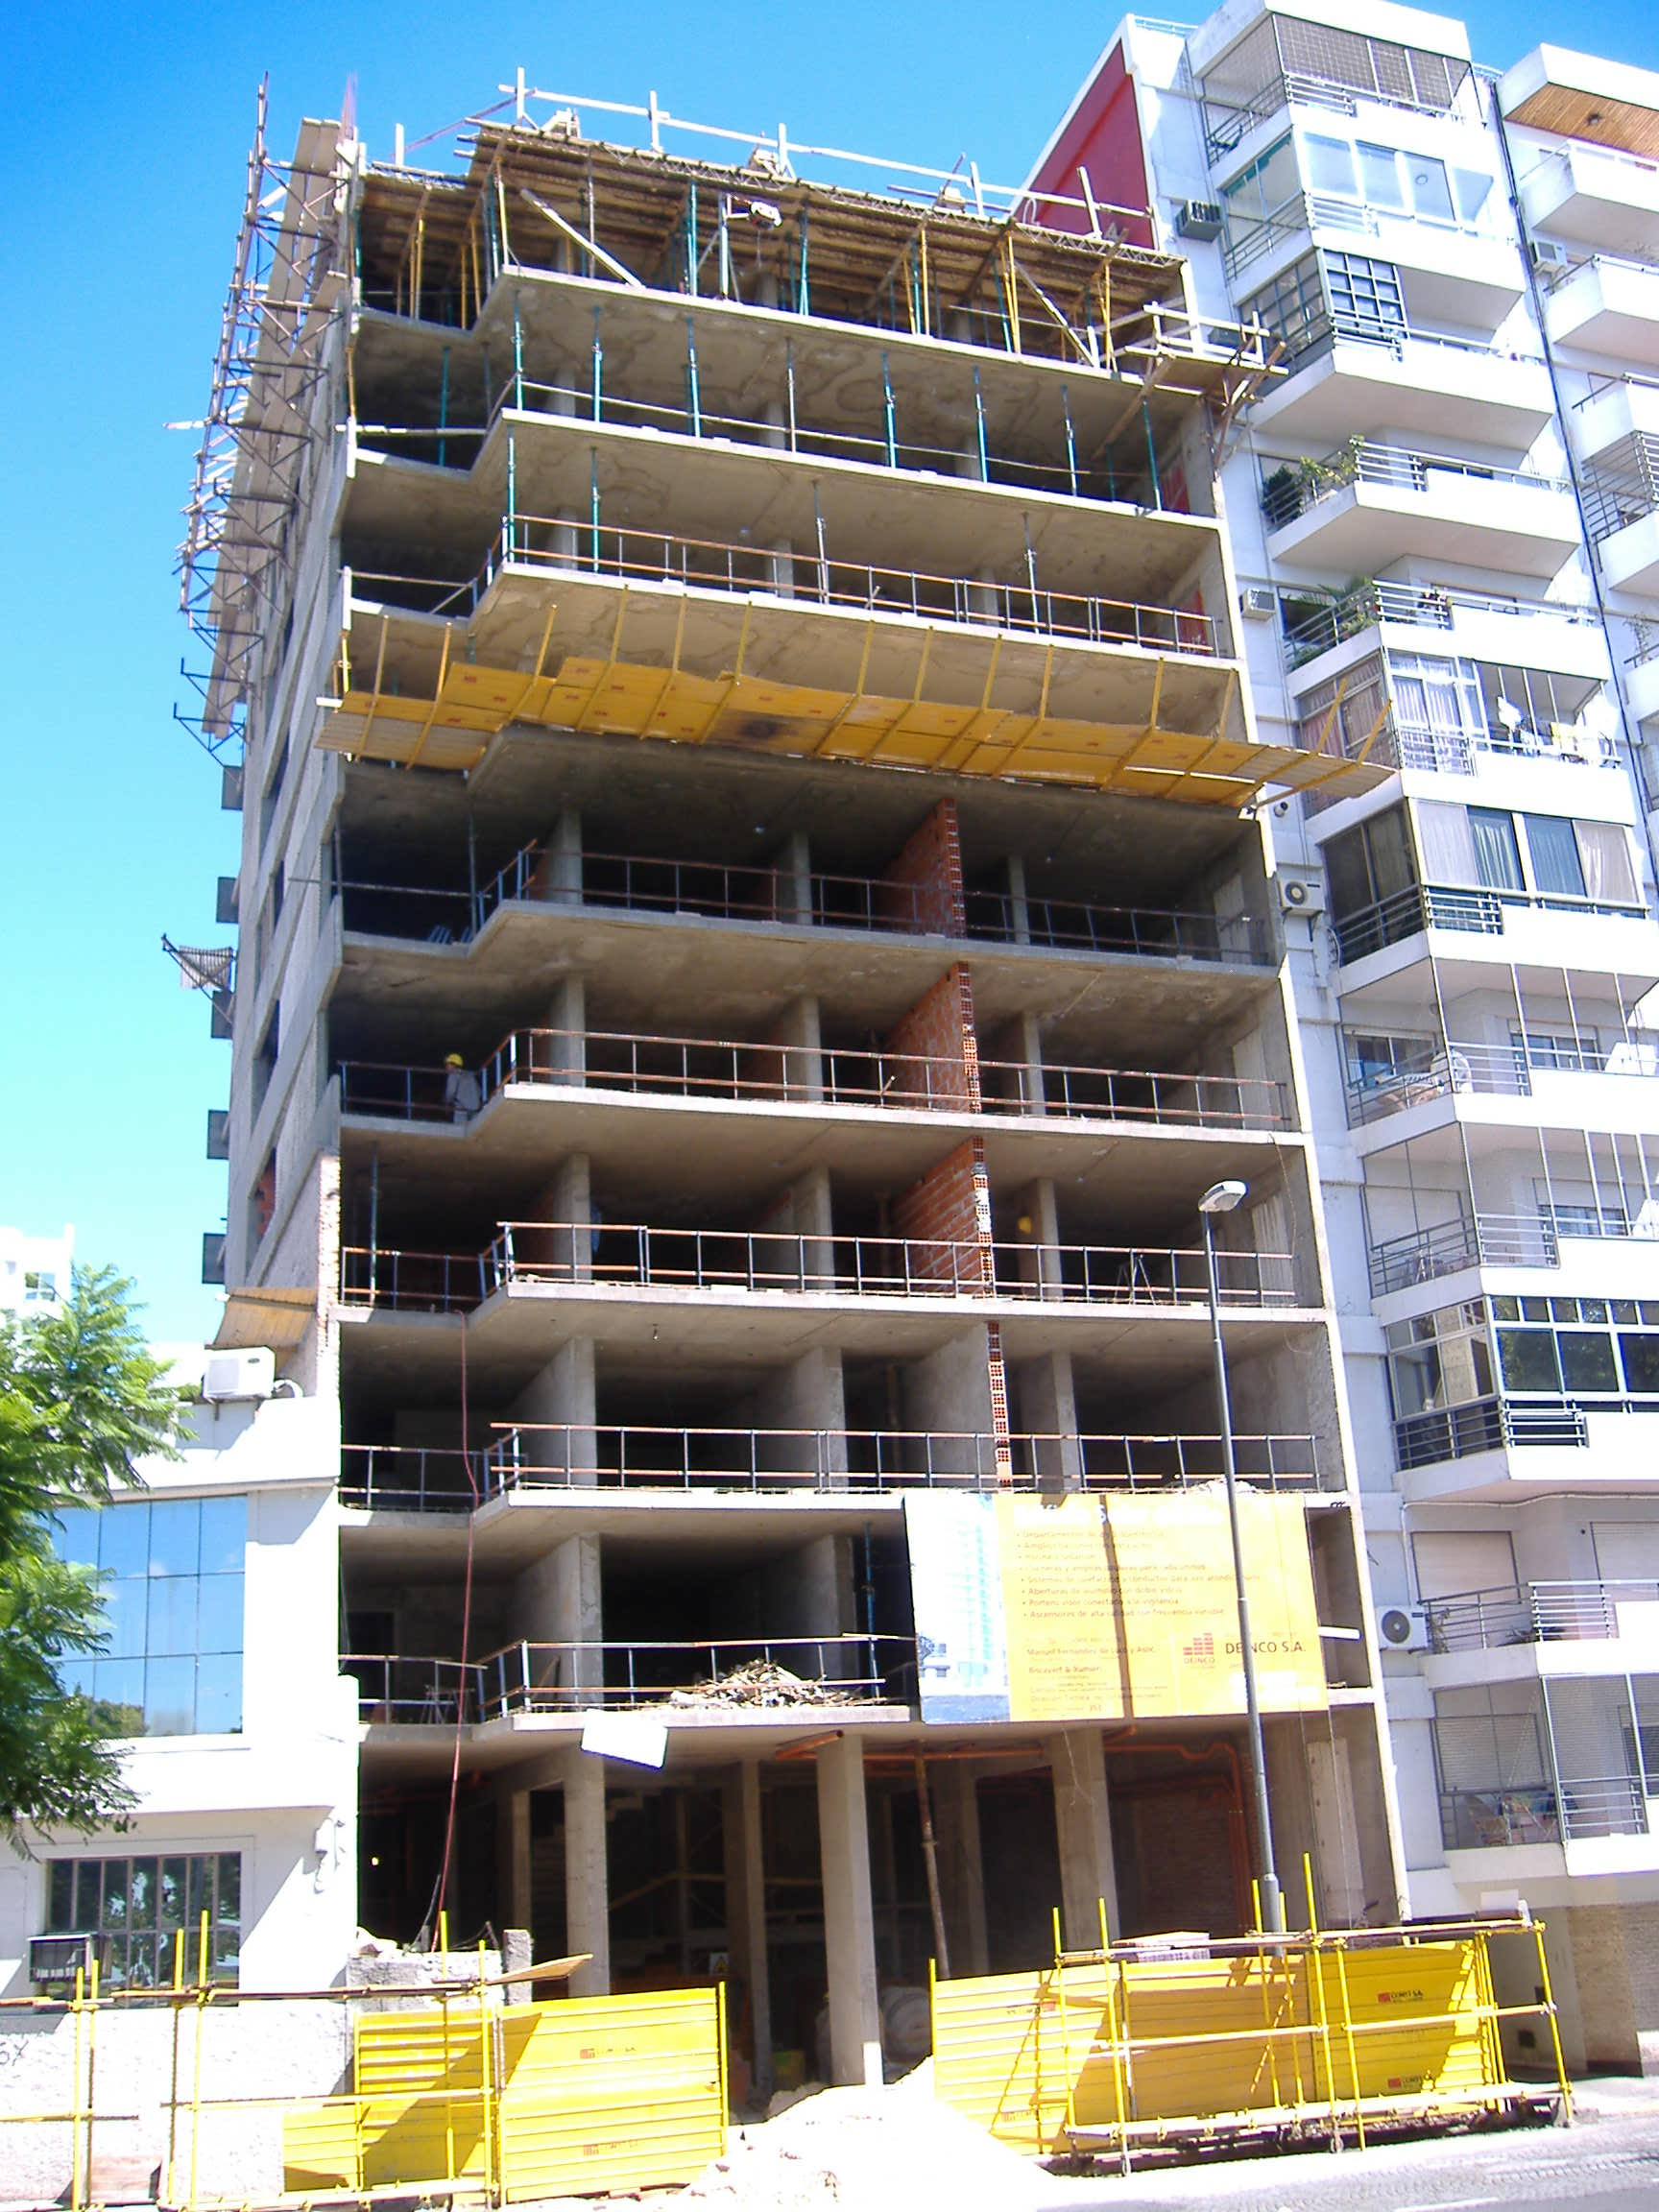 Rosario under construction.jpg